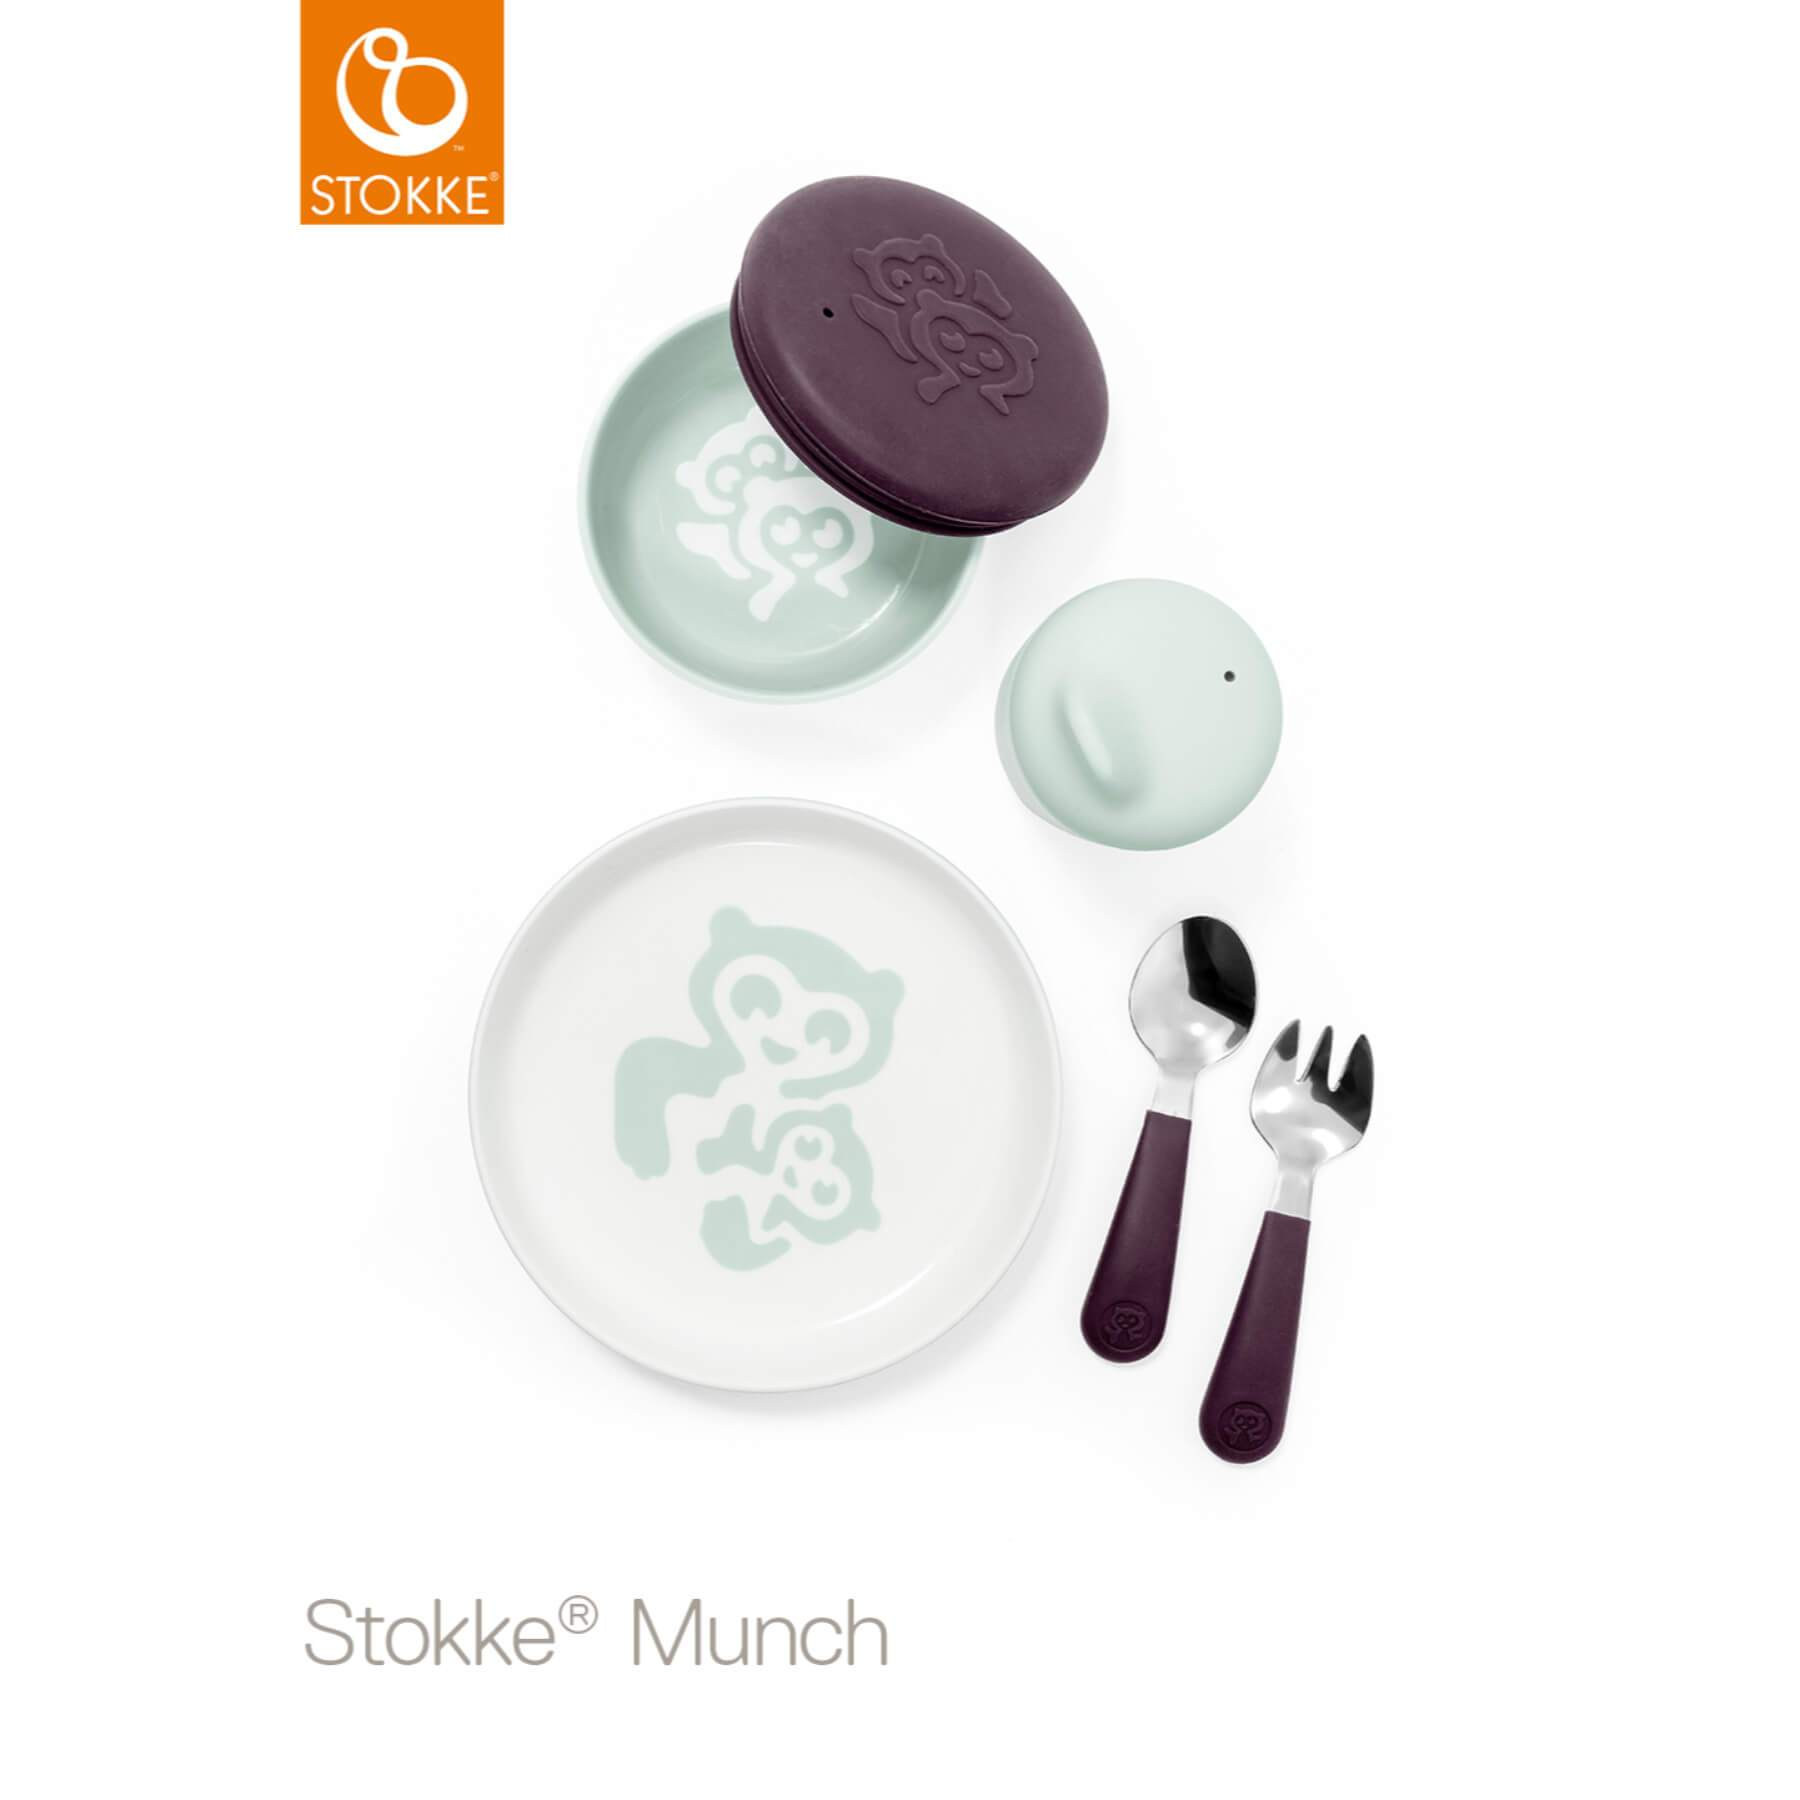 Stokke Munch - Everyday